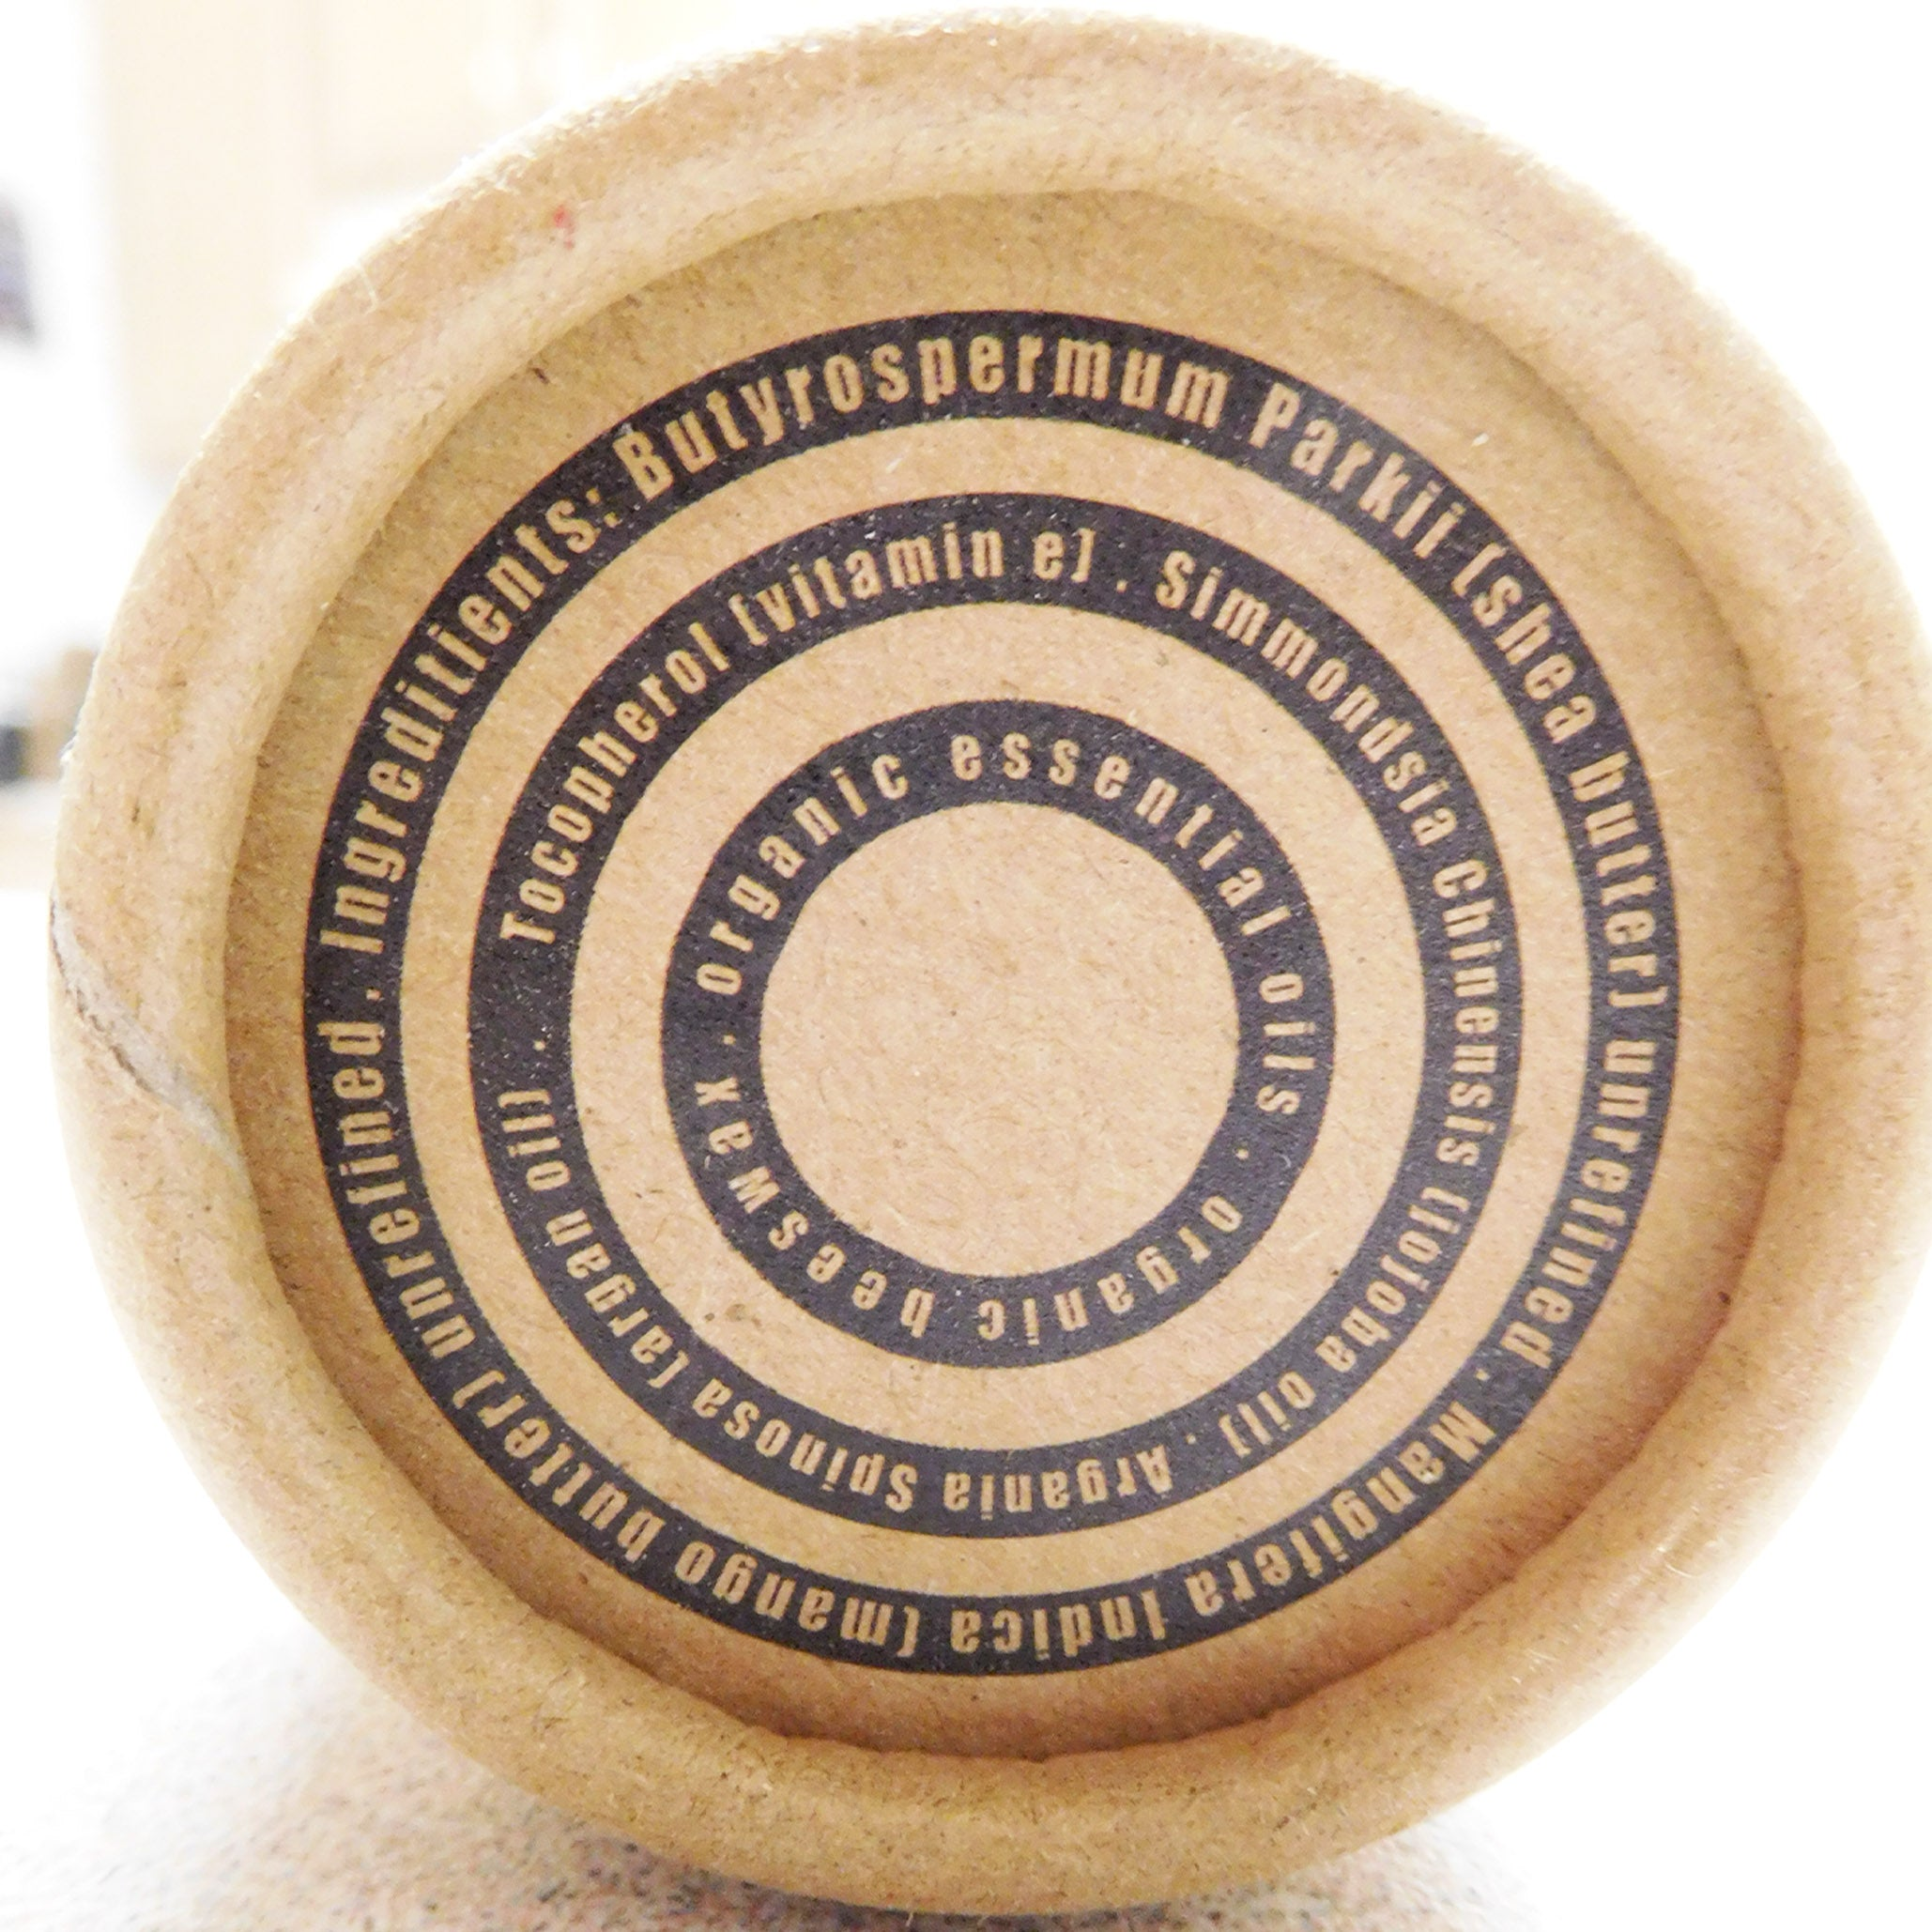 Explosive Citrus Beard Balm - Feels Great & Energizing Smell